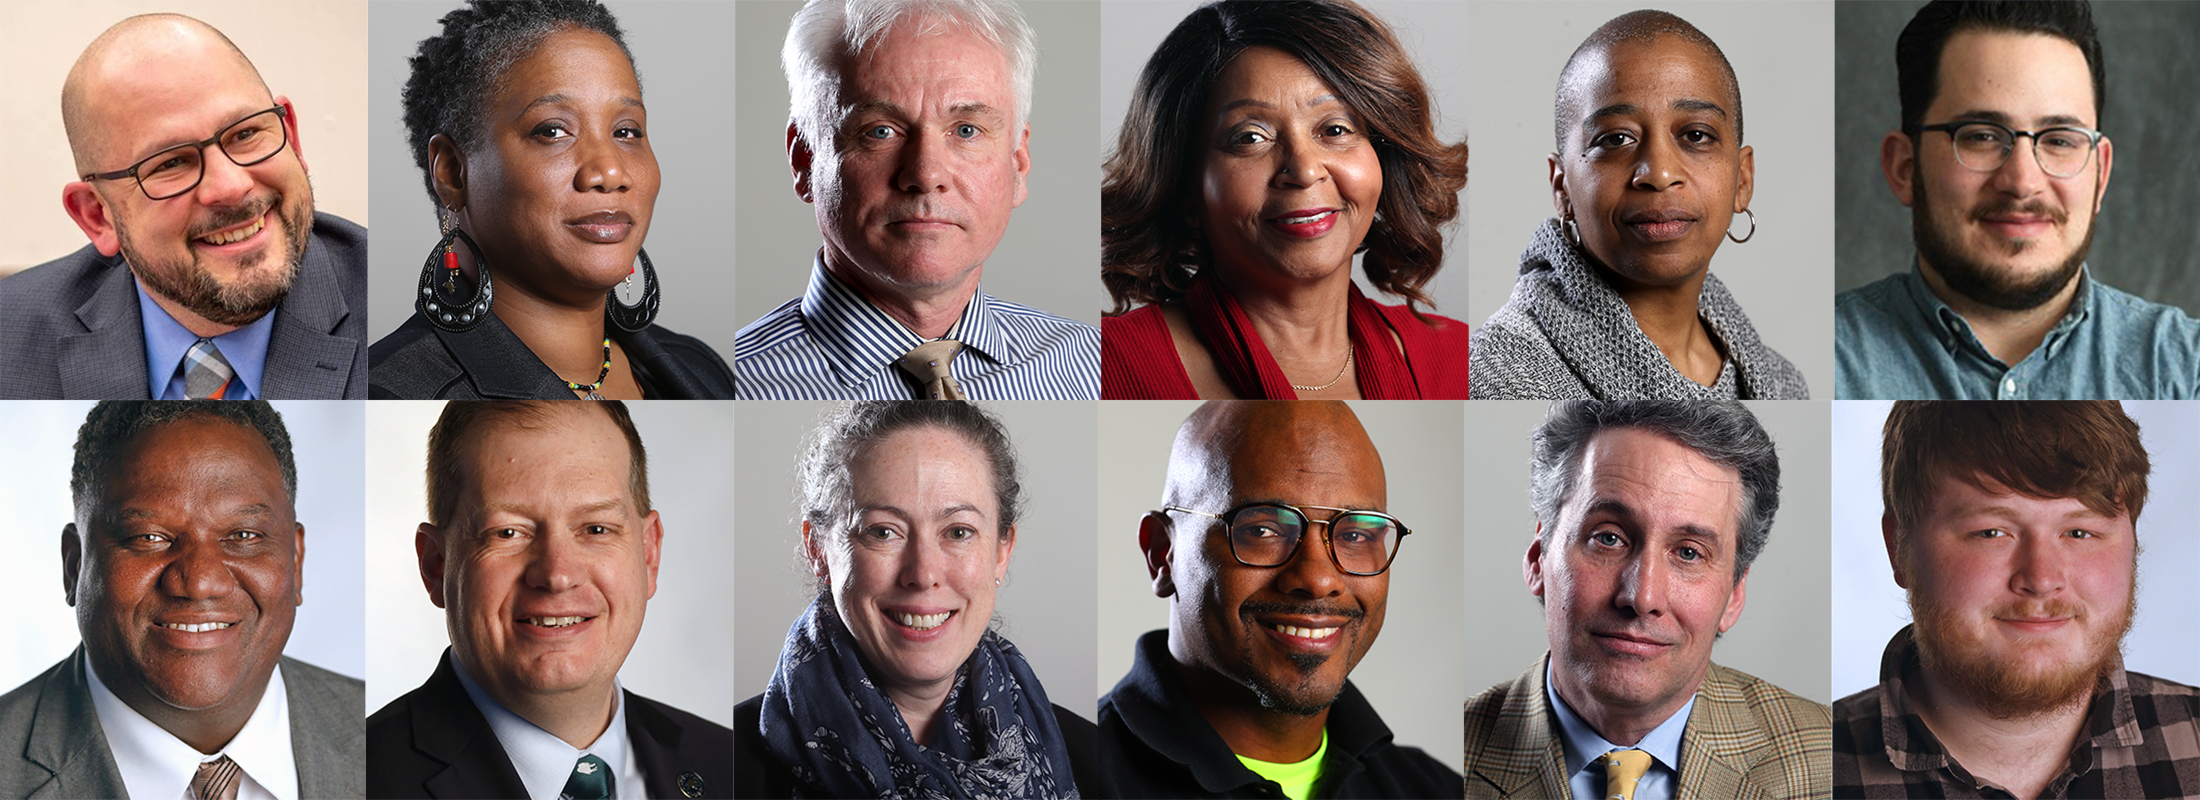 A look at 12 candidates running for the Buffalo Board of Education.